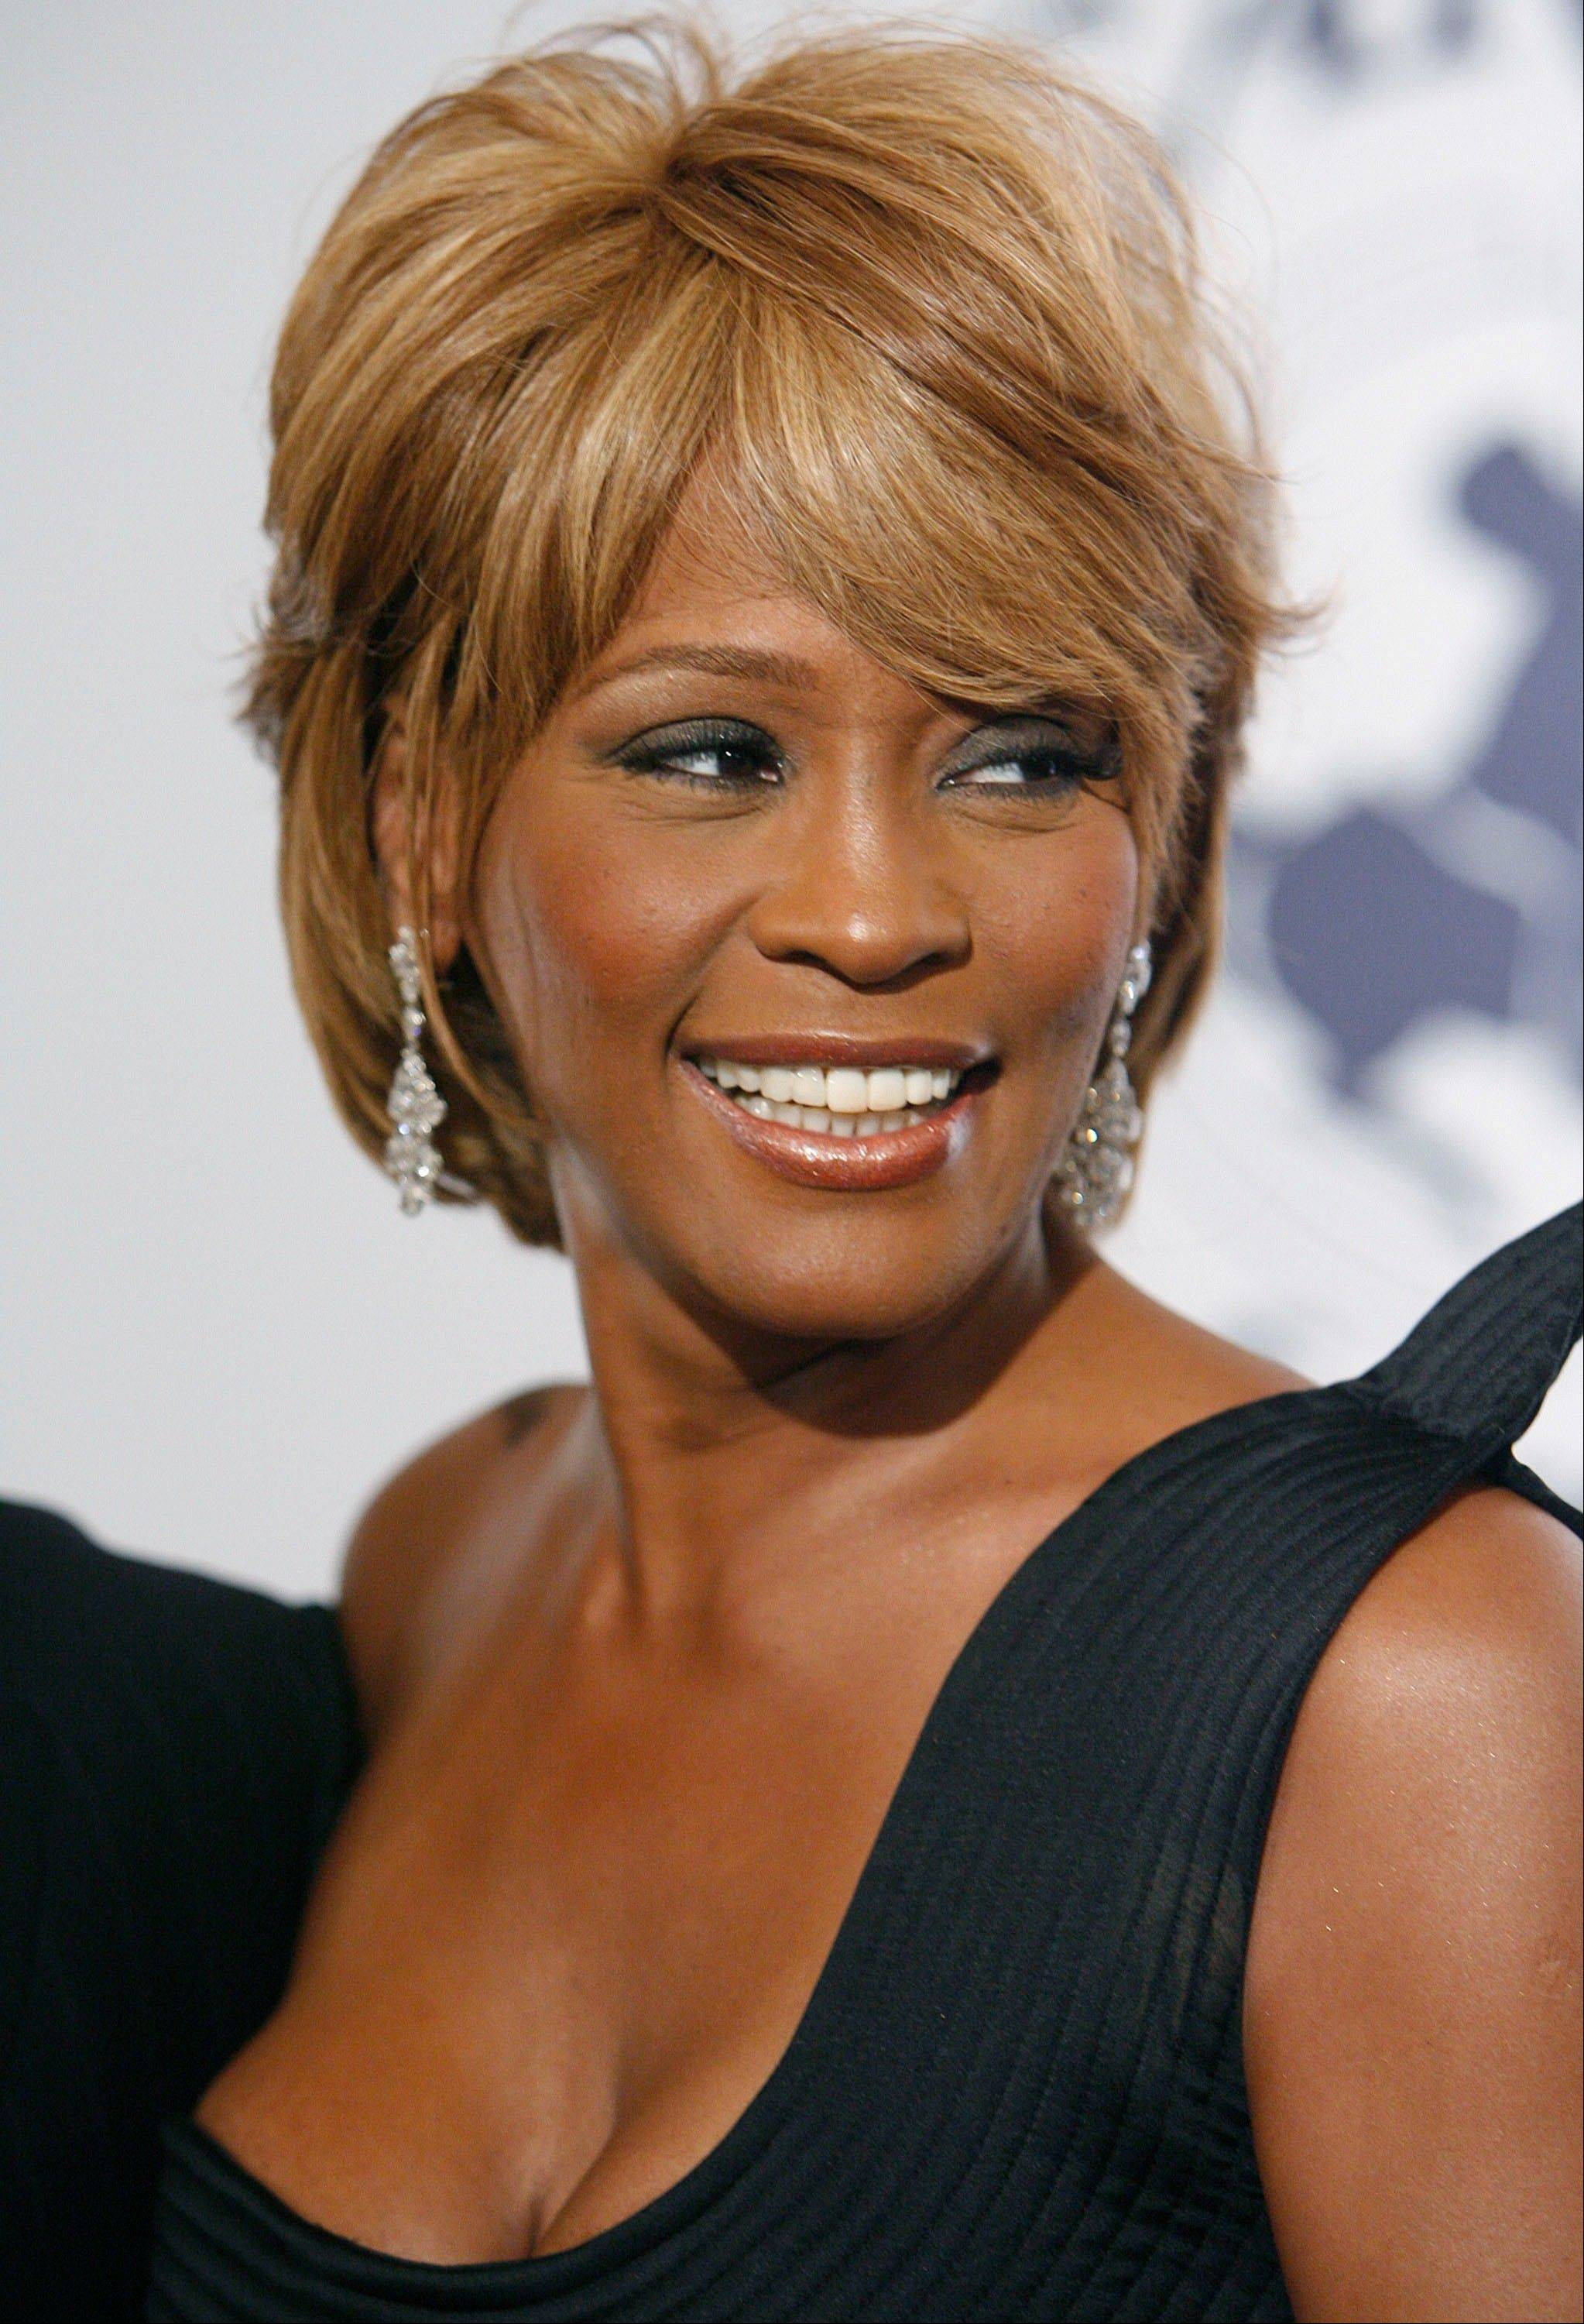 In this Oct. 28, 2006, file photo, musician Whitney Houston arrives at the 17th Carousel of Hope Ball benefiting the Barbara Davis Center for Childhood Diabetes in Beverly Hills, Calif. Houston died Saturday. Houston, who reigned as pop music's queen until her majestic voice and regal image were ravaged by drug use, was 48.